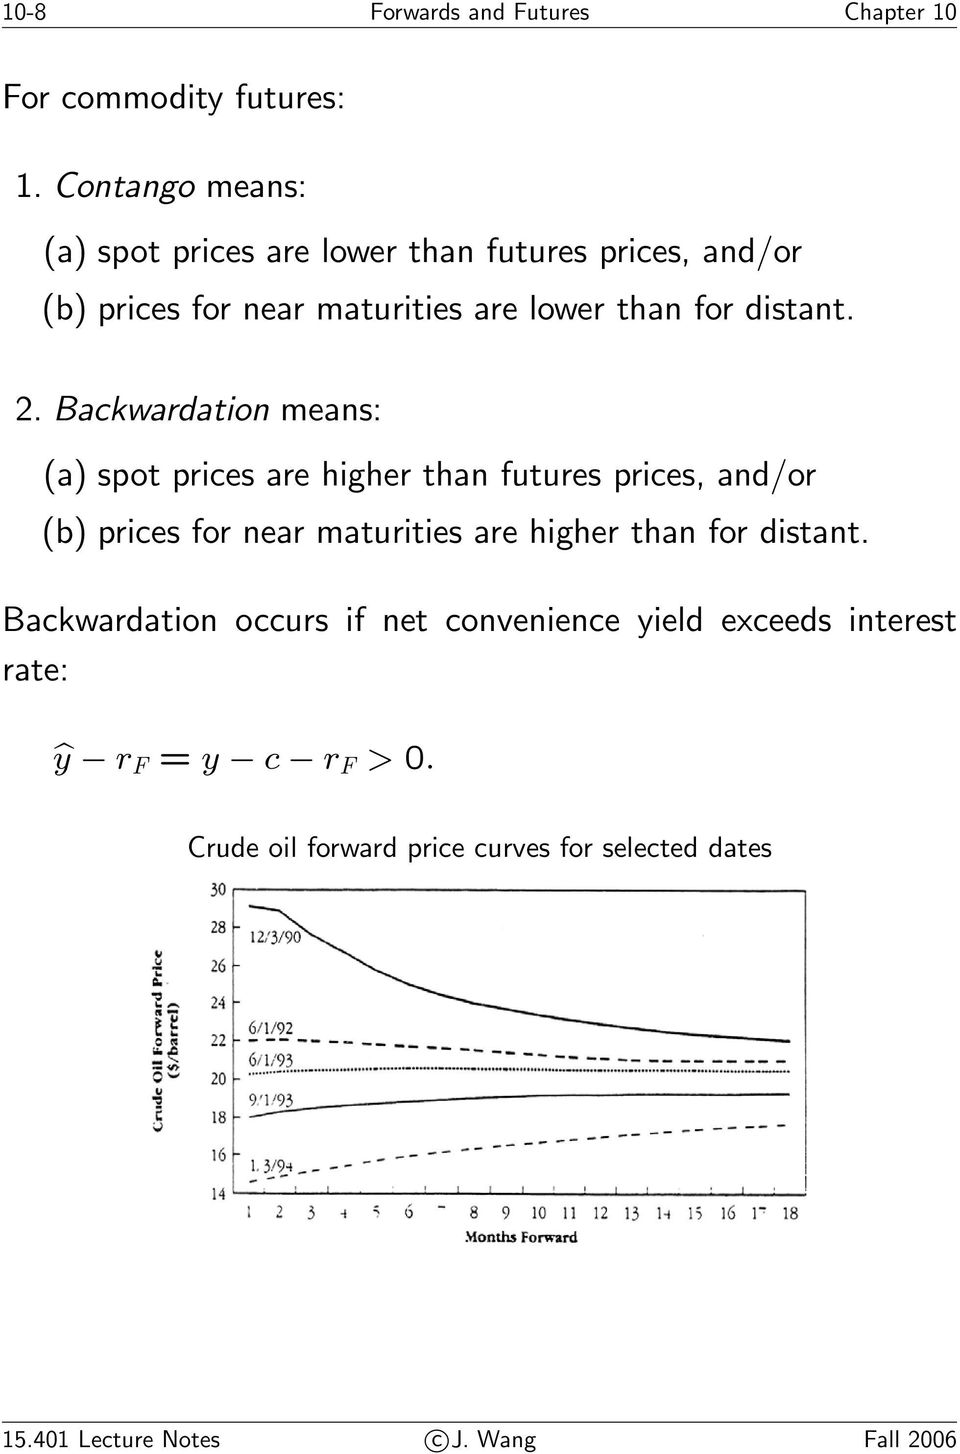 2. Backwardation means: (a) spot prices are higher than futures prices, and/or (b) prices for near maturities are higher than